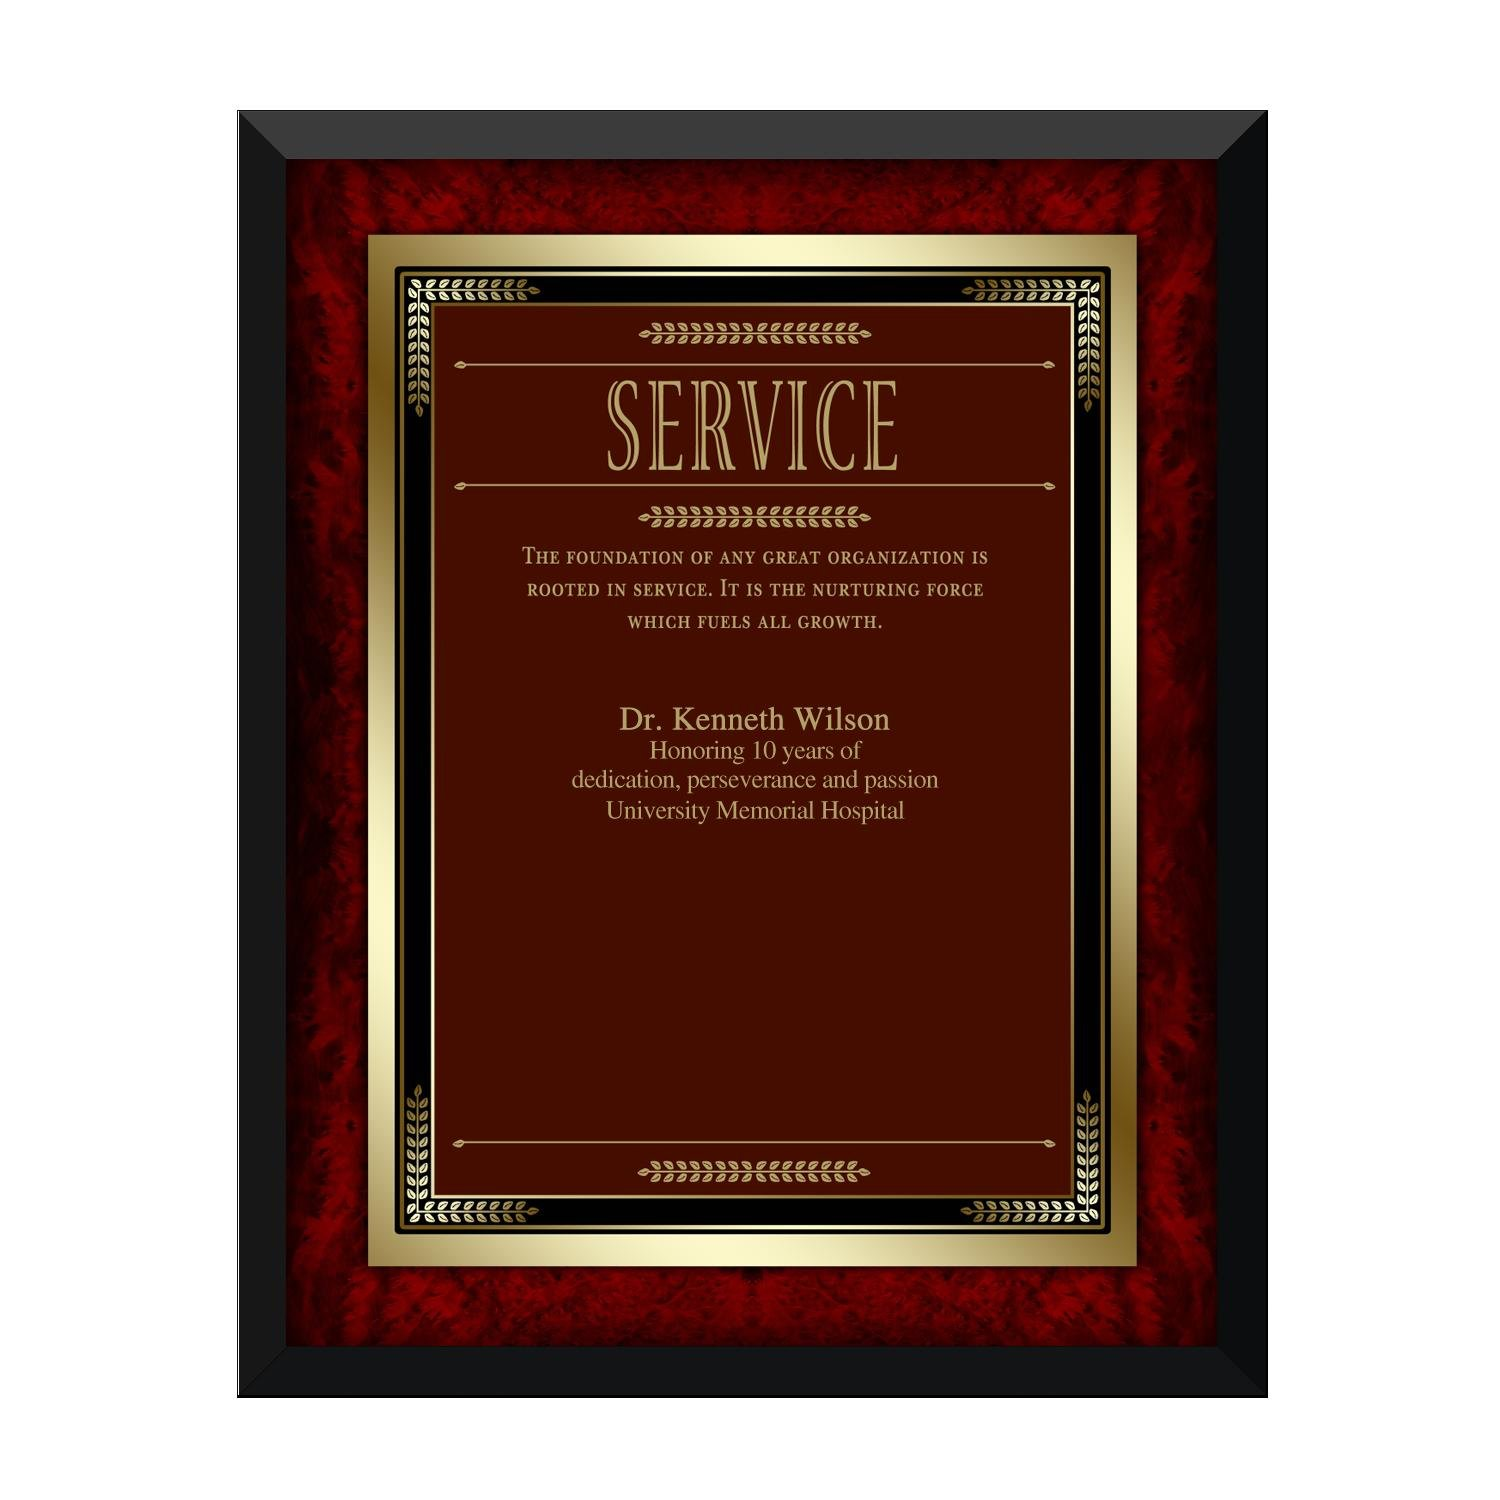 Quotes For Service Award Plaque Quotesgram